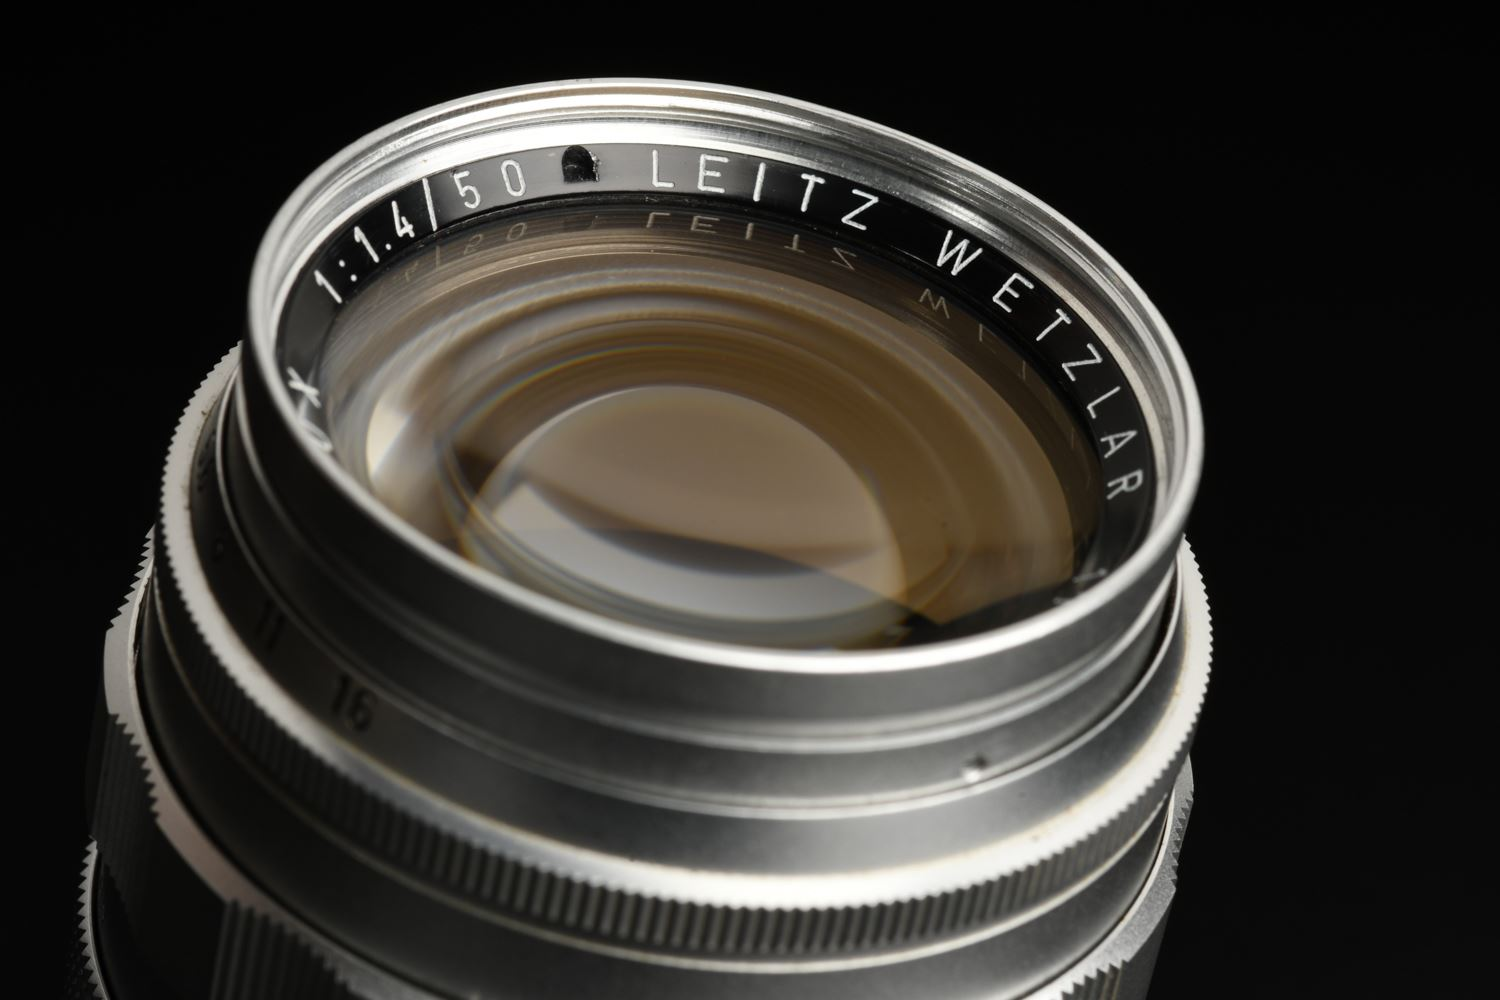 Picture of Leica Summilux-M 50mm f/1.4 Ver.1 E43 Silver Screw LTM